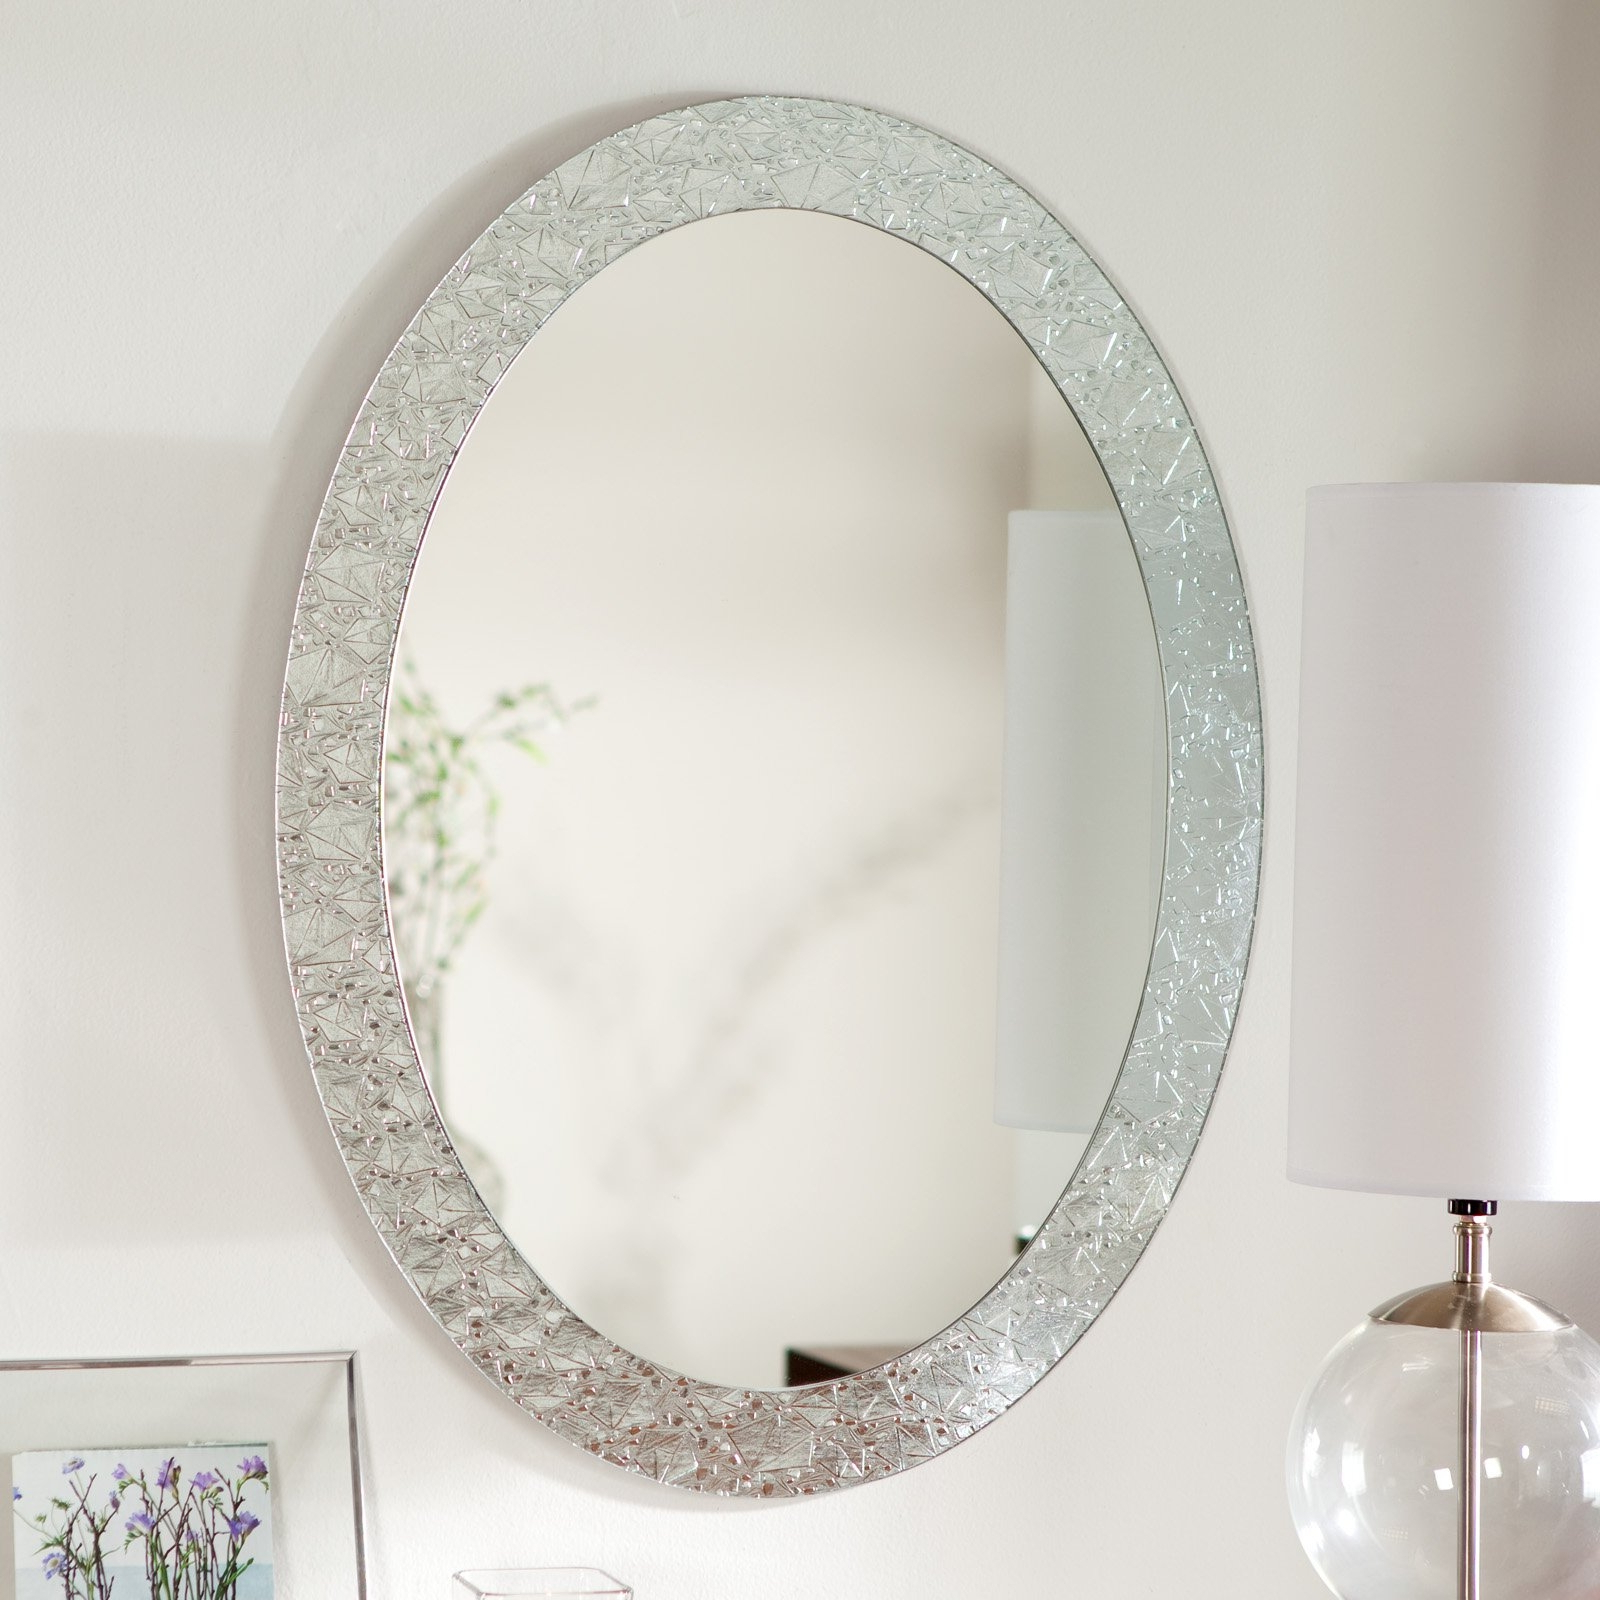 Popular Oval Shaped Bathroom Mirrors • Bathroom Mirrors And Wall Mirrors Inside Oval Shaped Wall Mirrors (View 14 of 20)